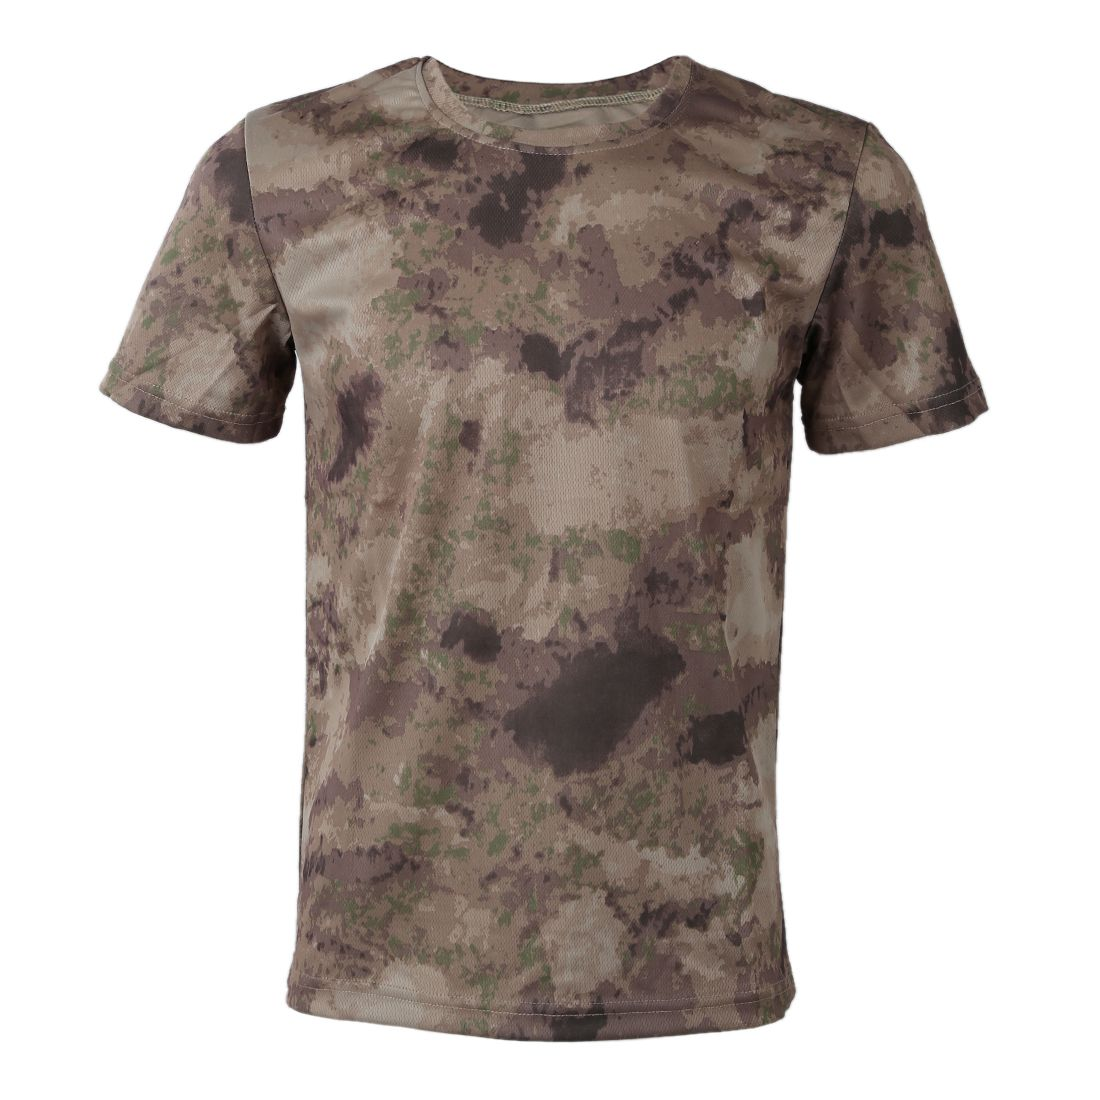 NewOutdoor Hunting CamouflageT-shirt Men Breathable Army Tactical CombatTShirt Military Dry Sport Camo CampTees